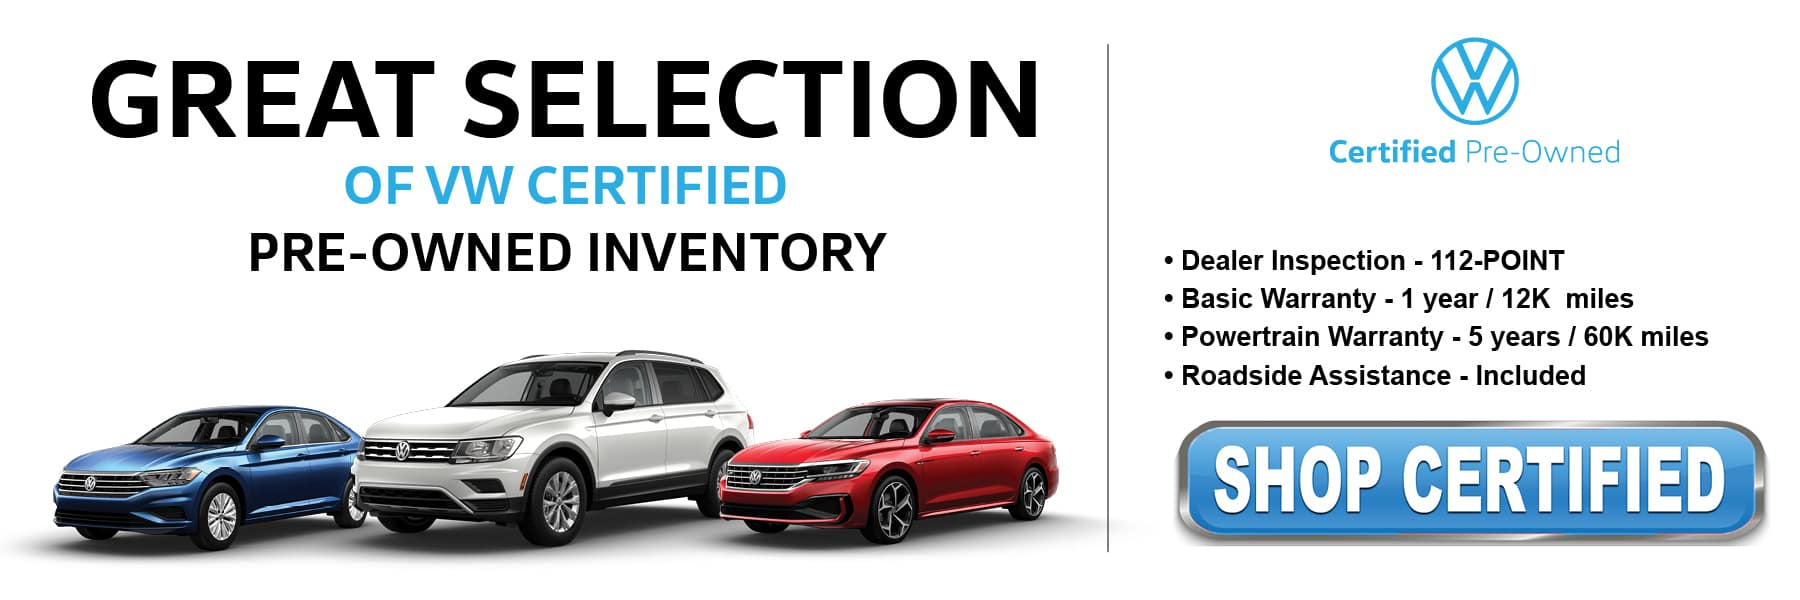 Shop Certified Pre-Owned Inventory at Kelly Volkswagen